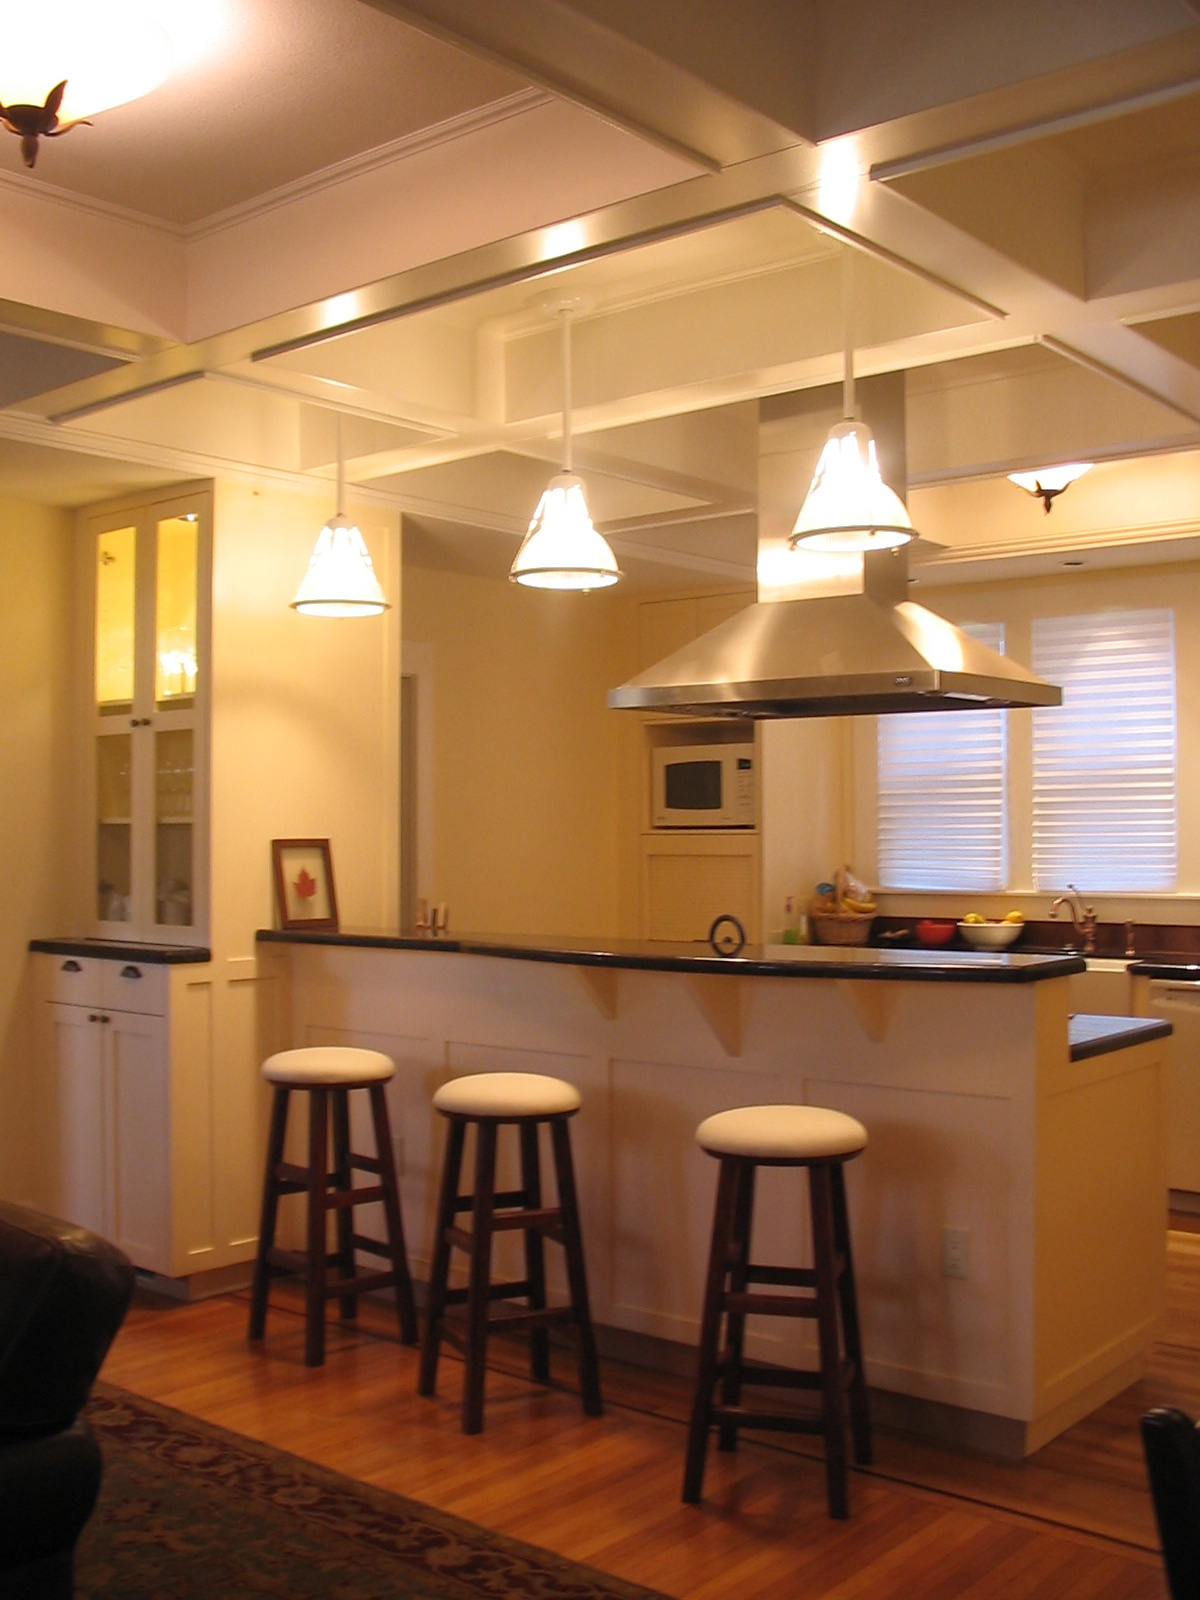 Kitchen remodel with bar